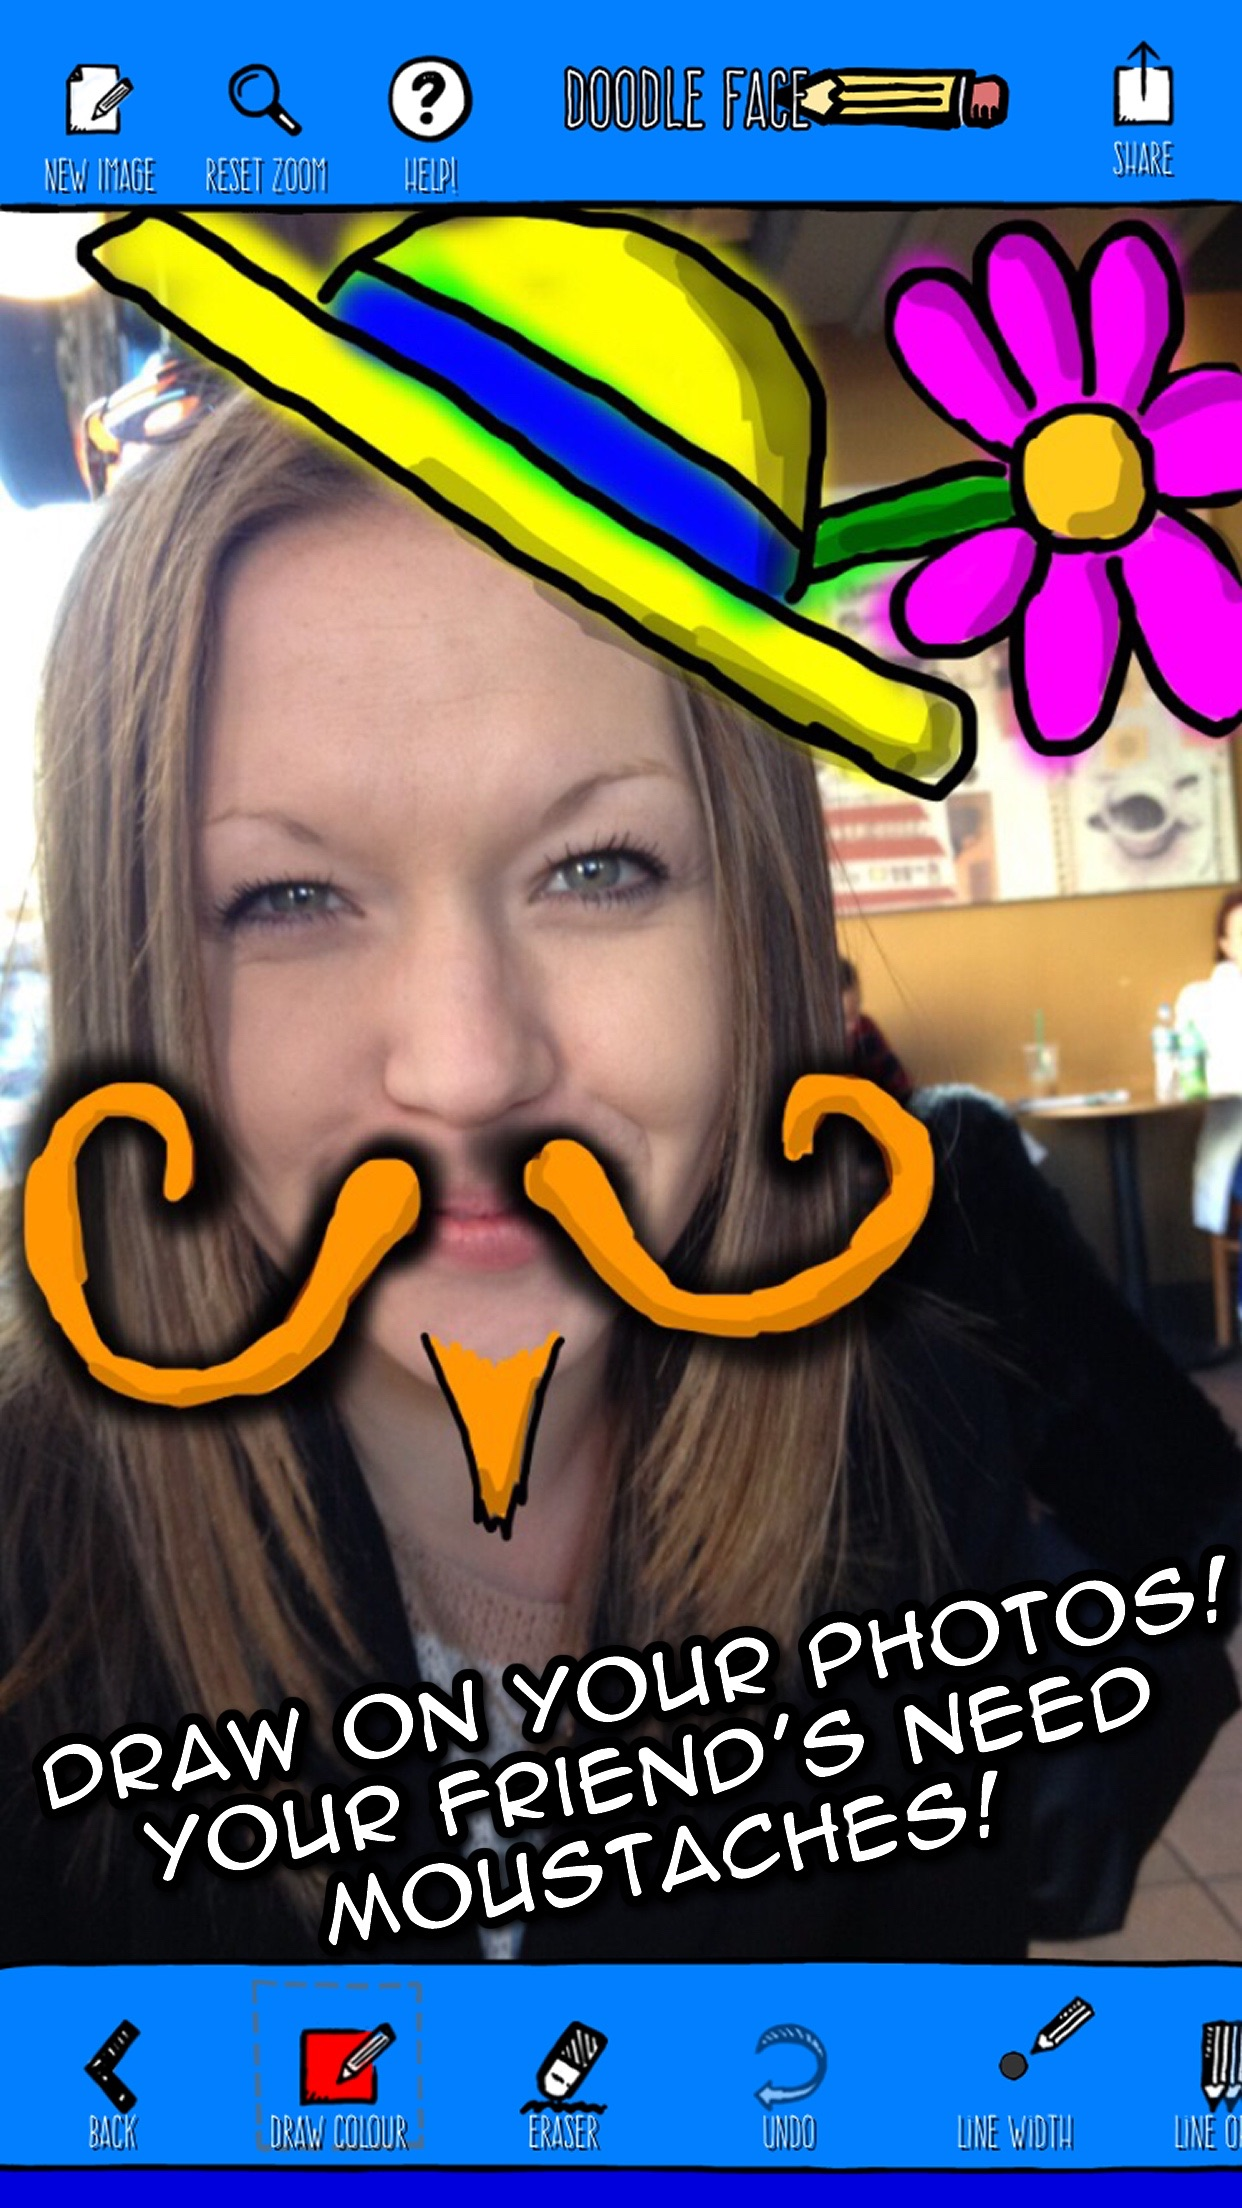 Doodle Face! Draw something silly on your photos! Screenshot